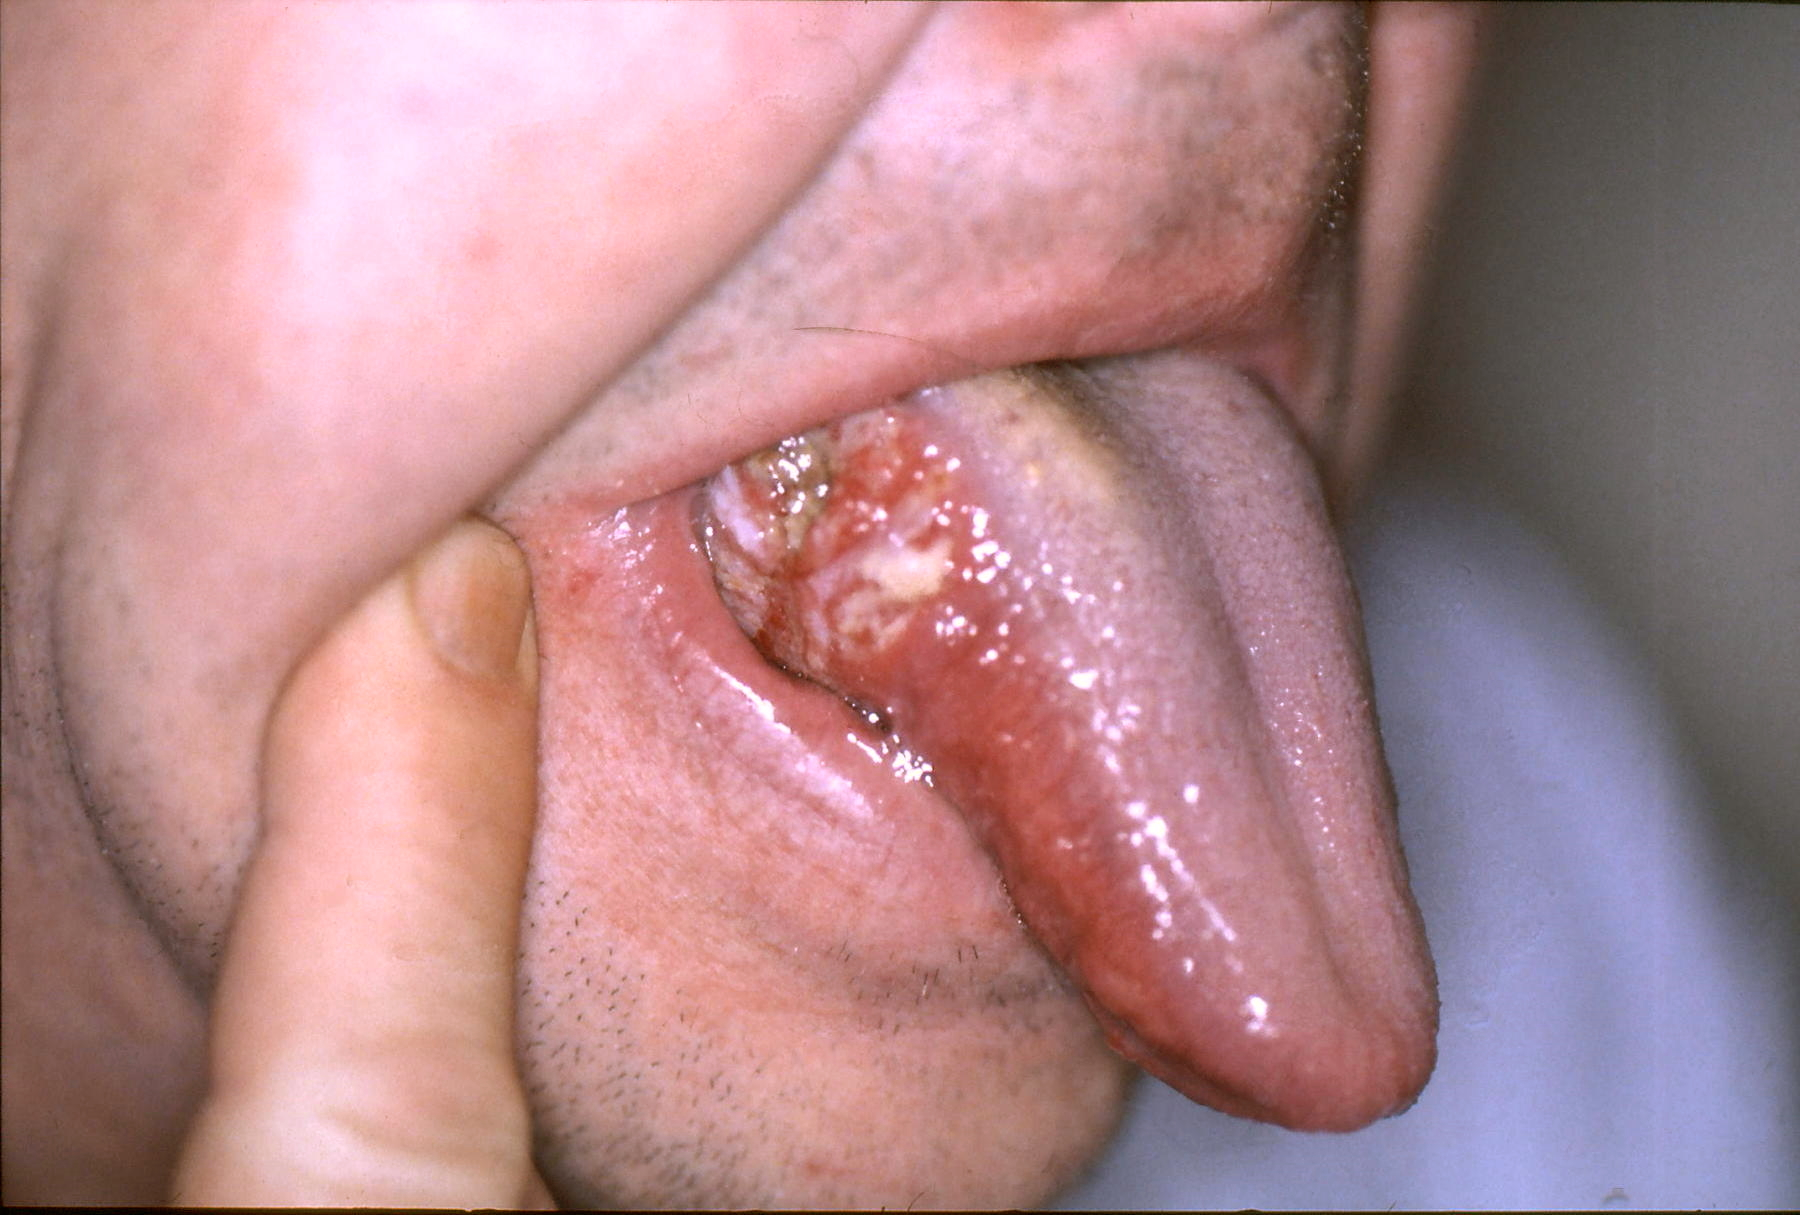 hpv on tongue how to treat papillomatosis respiratory